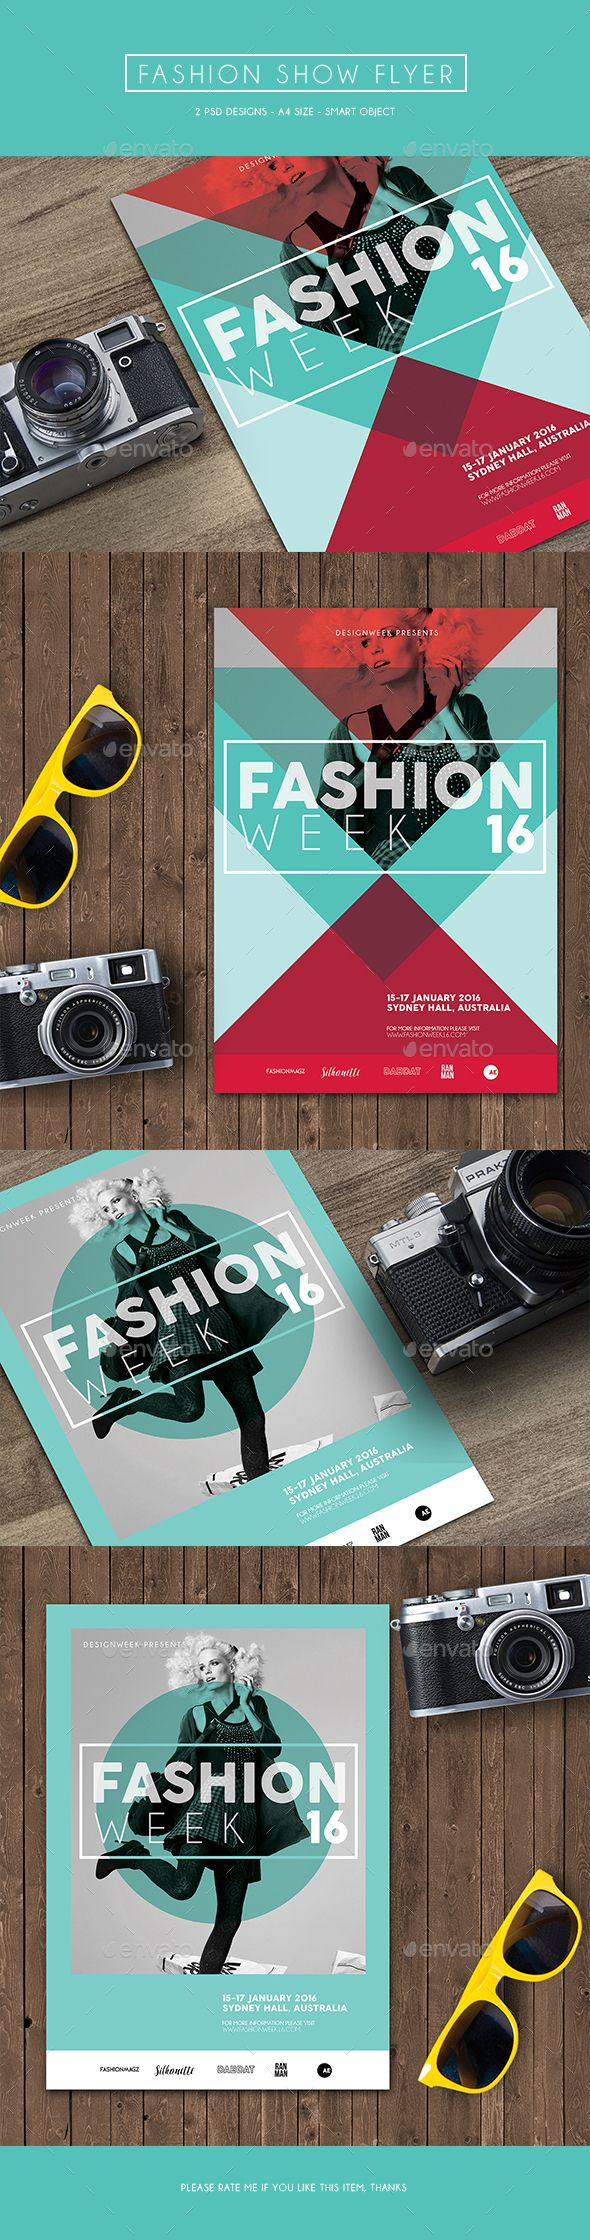 Fashion show flyer templates 74